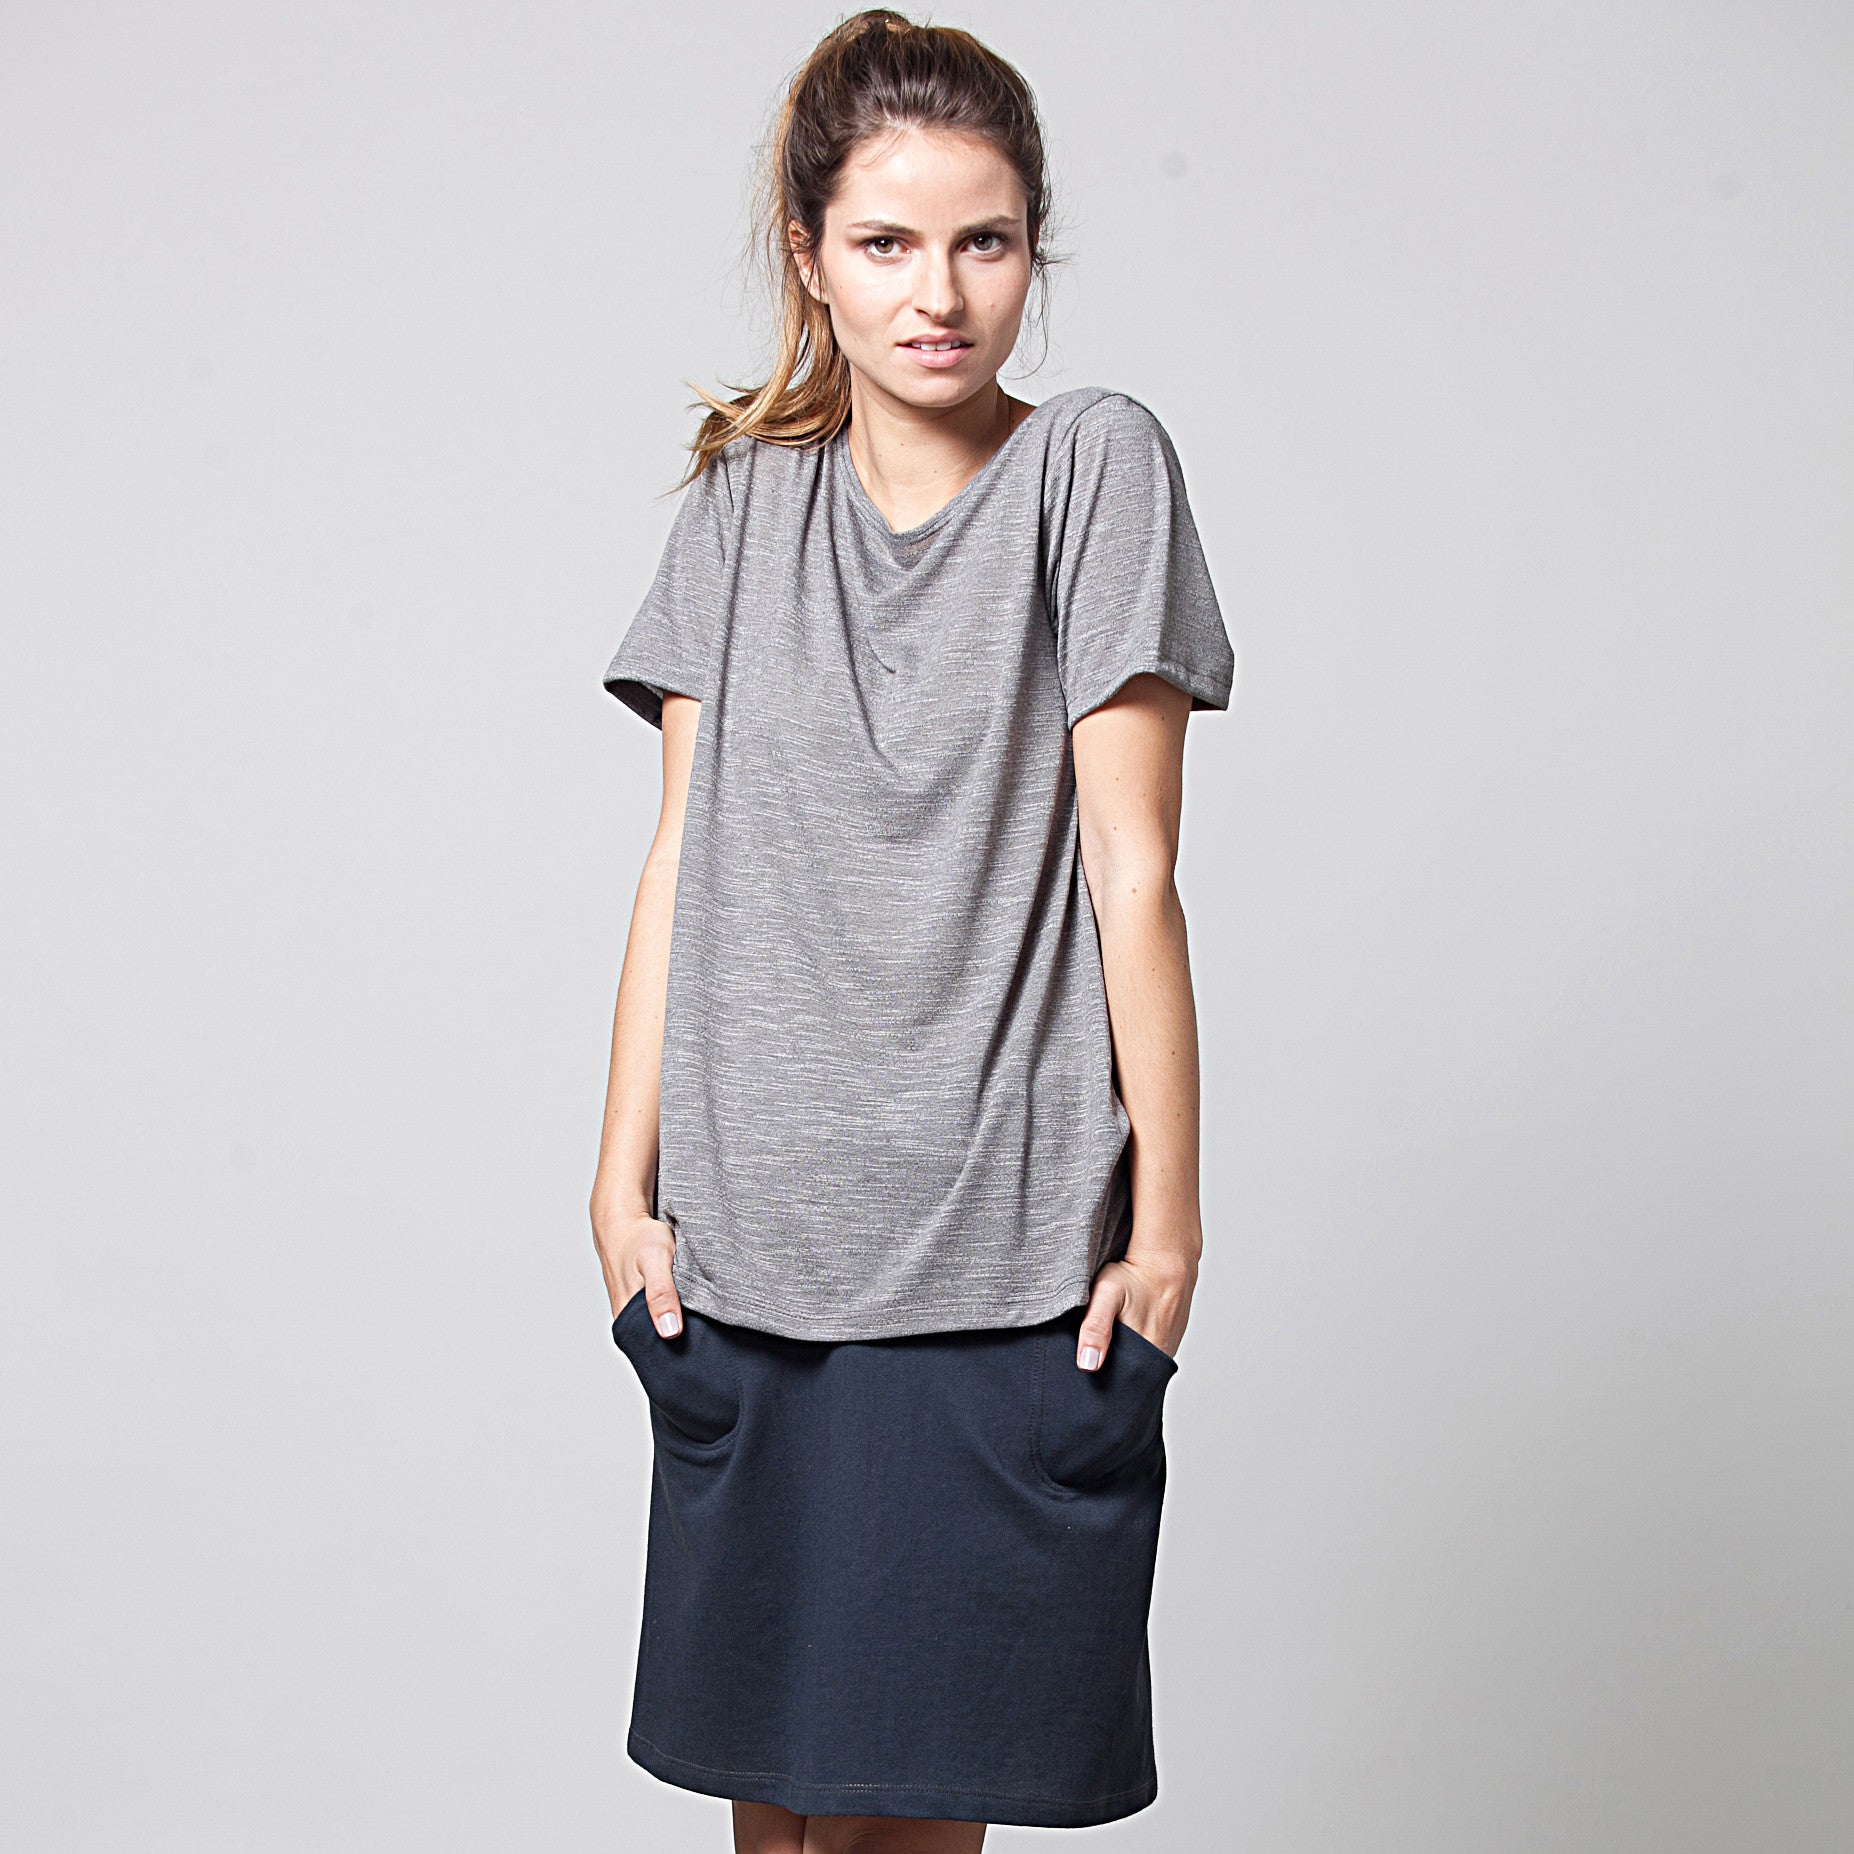 Sample sale- A-line skirt in french terry in S-M color navy - DuendeFashion  - 3